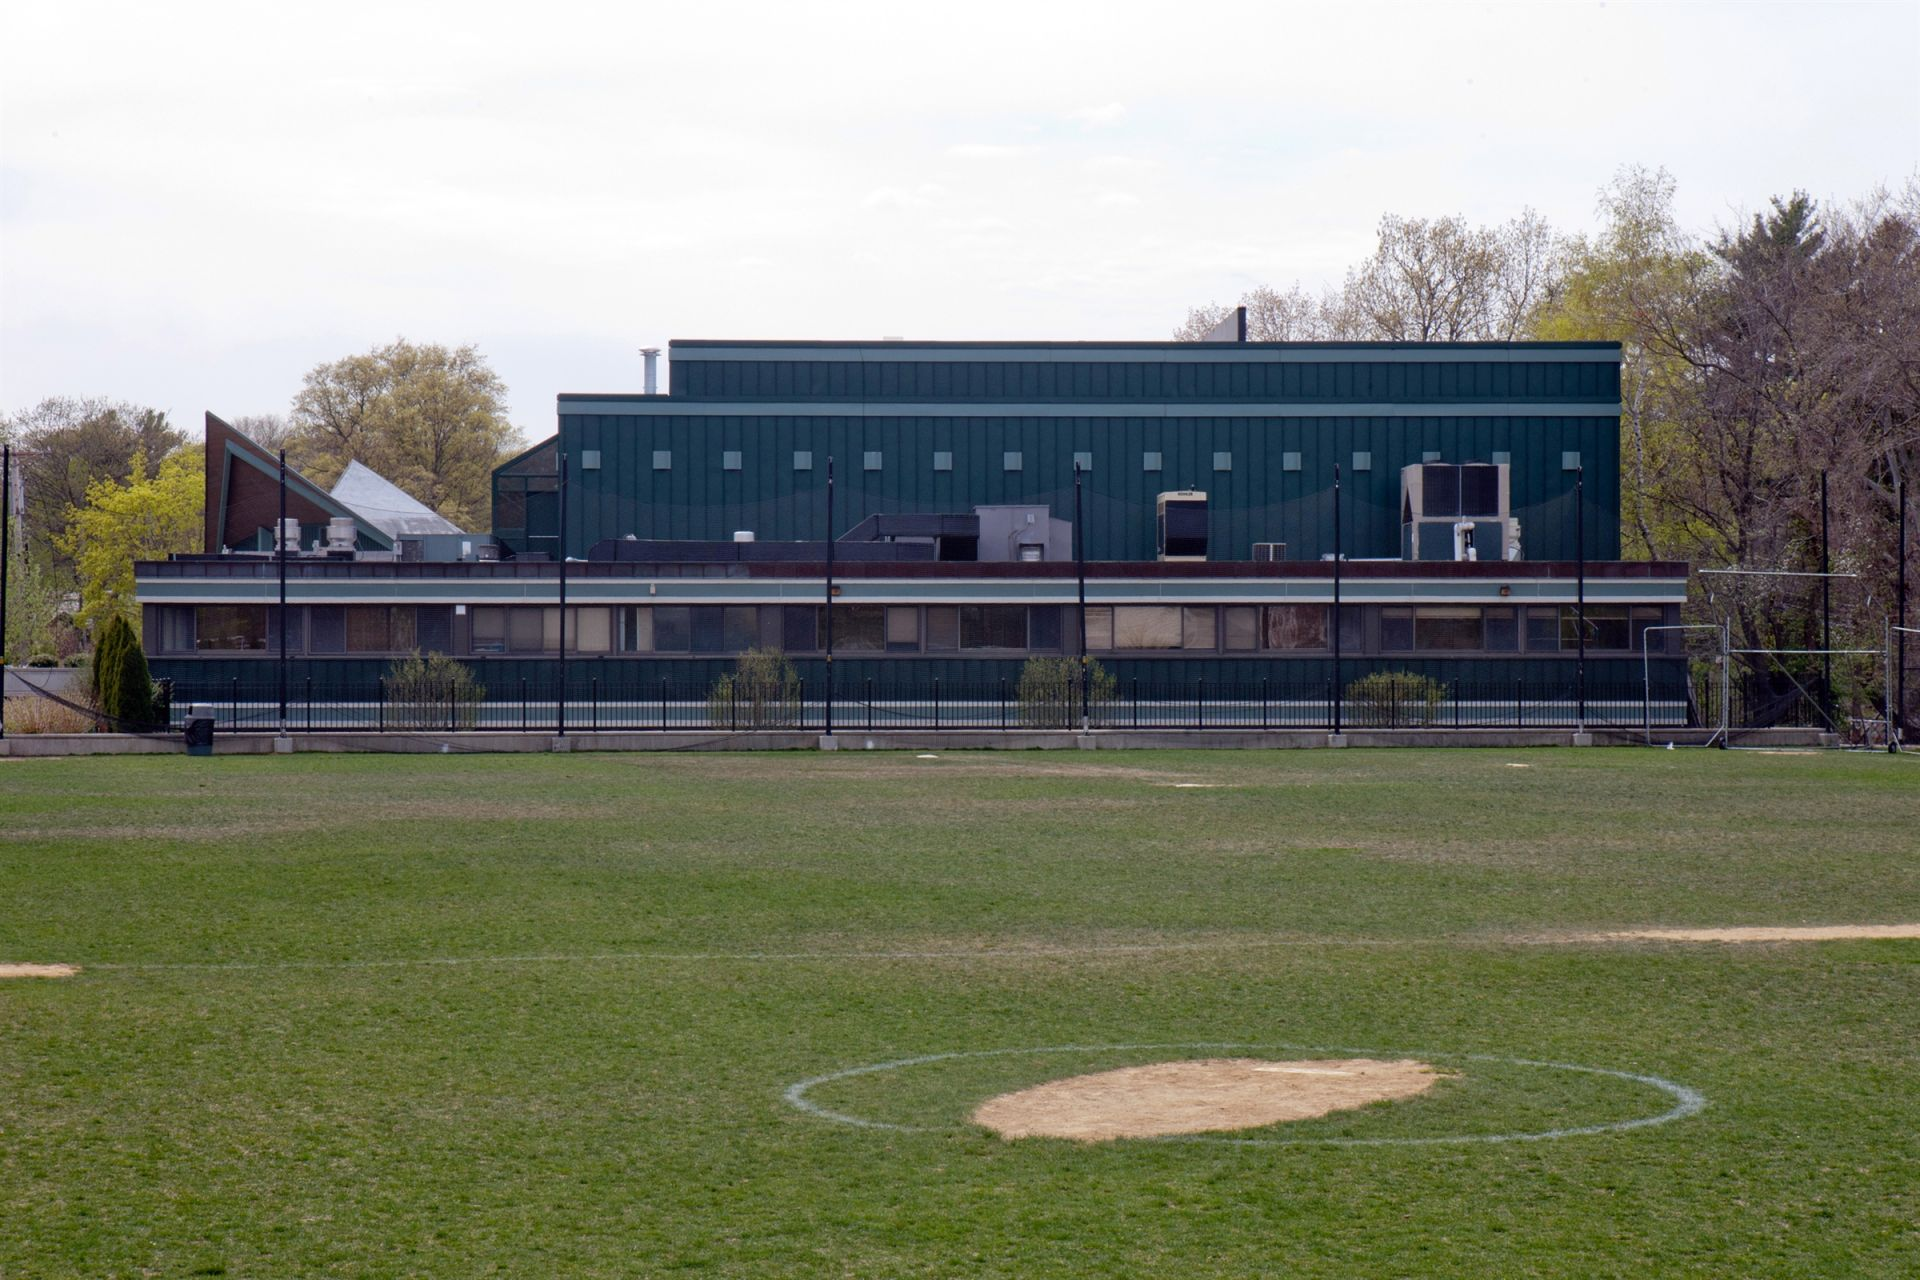 The Chase Building, including the Ruth Corkin Theatre, sits at the end of one of our two athletic fields.